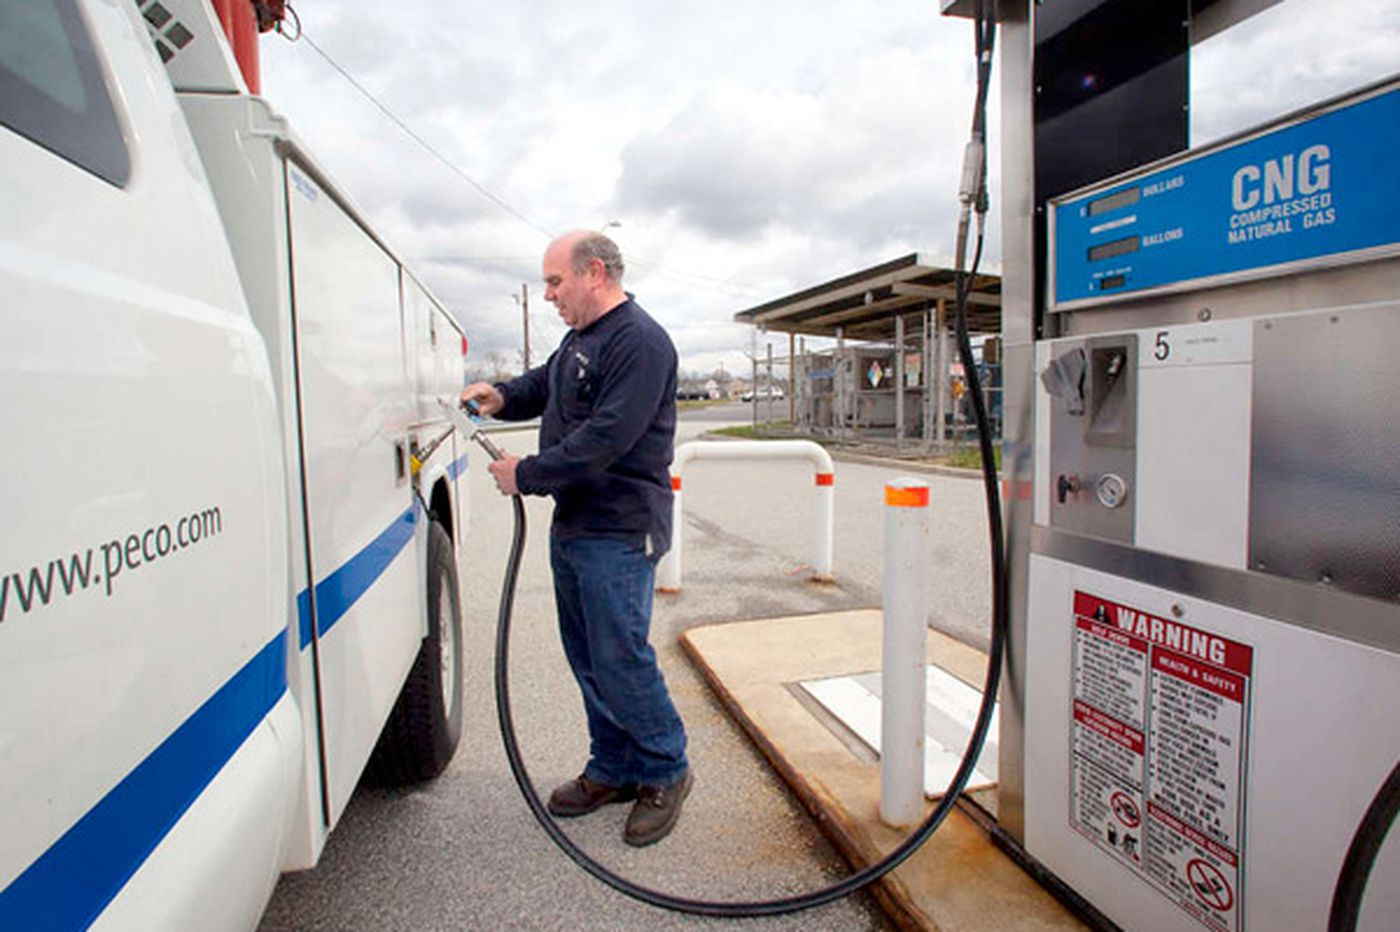 Another case for CNG-only cars